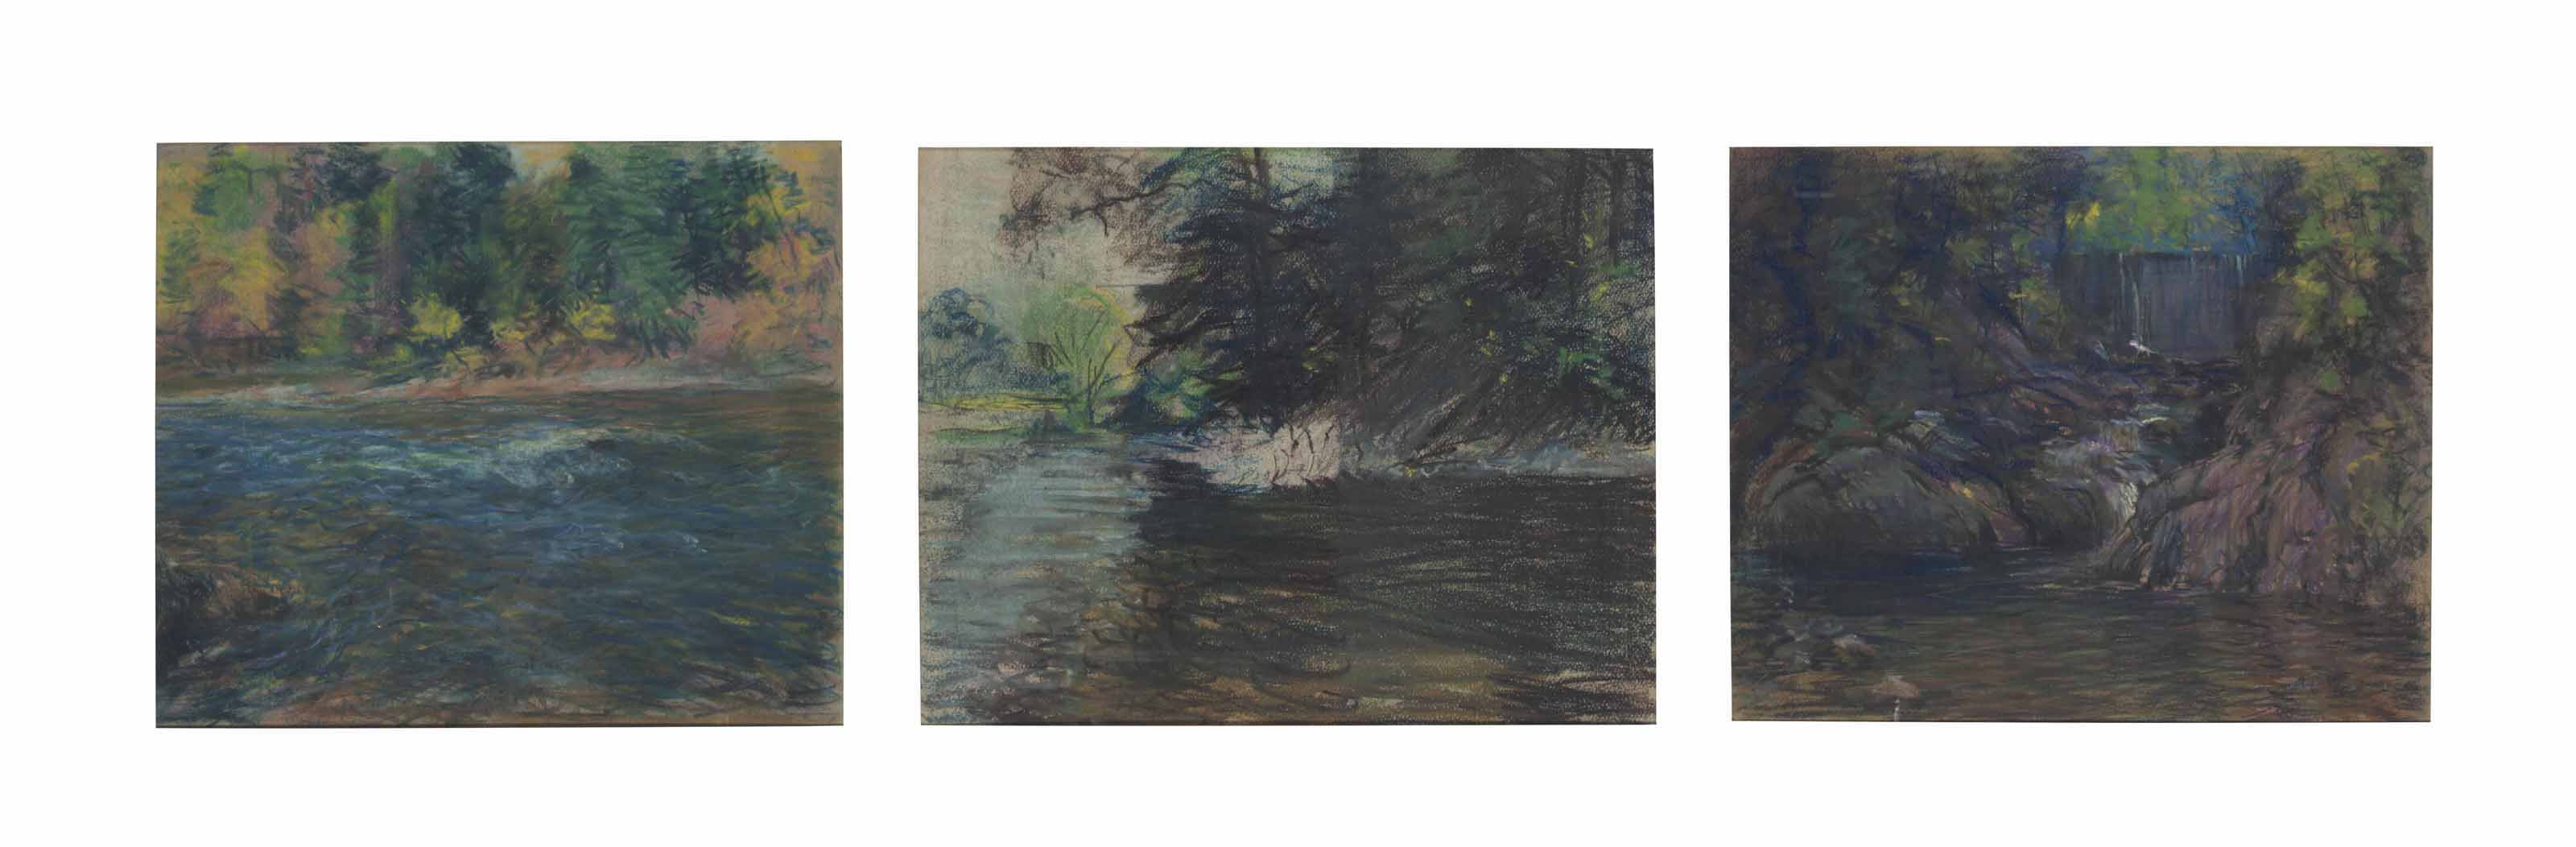 Woods; together with Autumn River Bank and Afternoon River